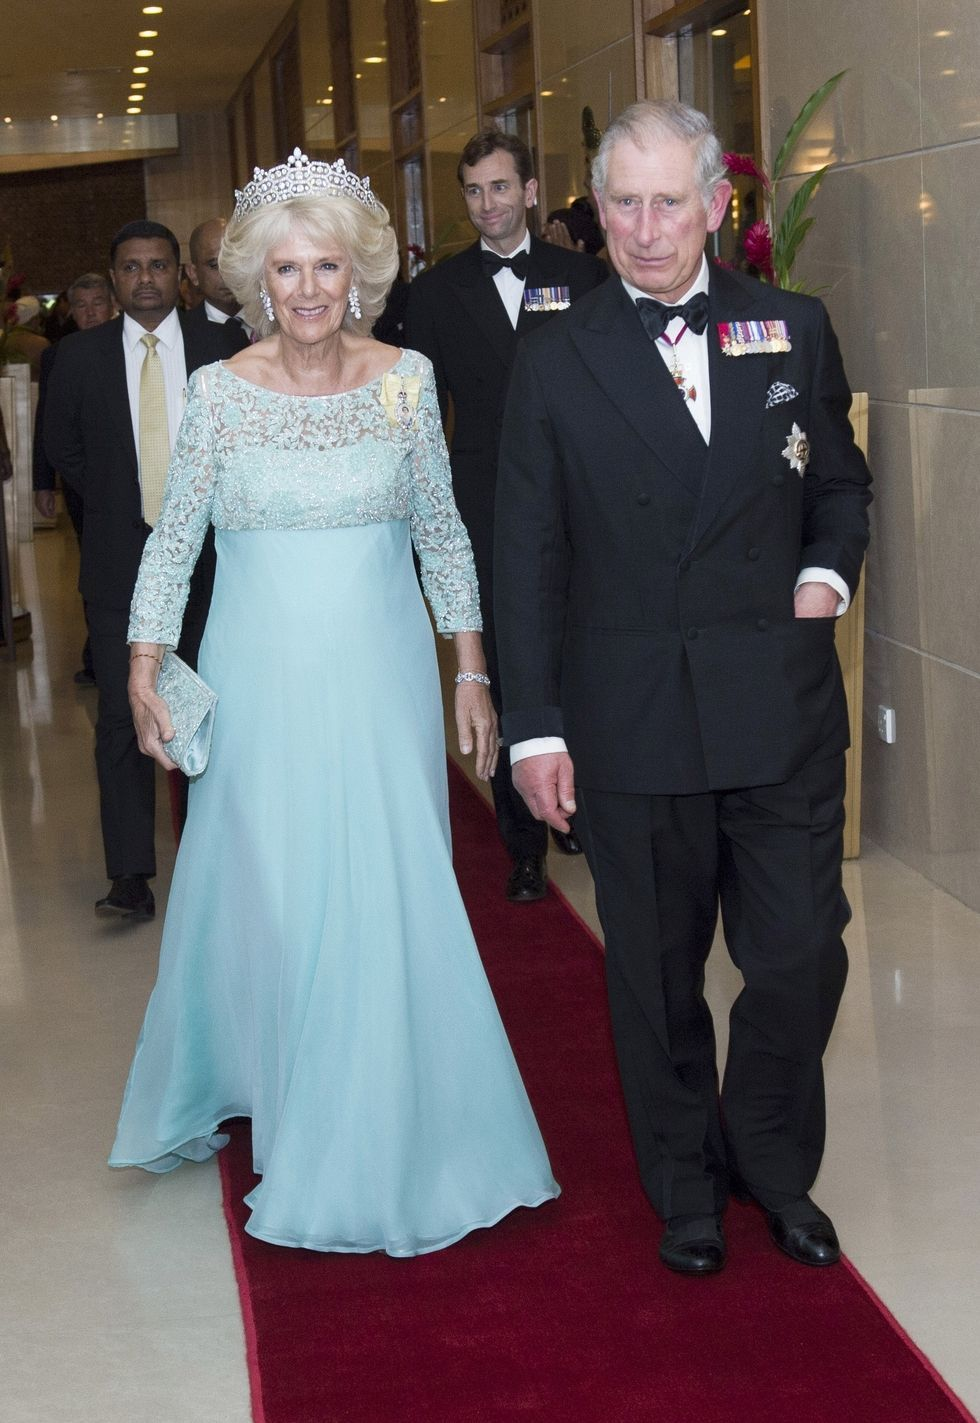 Camilla Parker Bowles\' Best Fashion Moments - Duchess of Cornwall Style